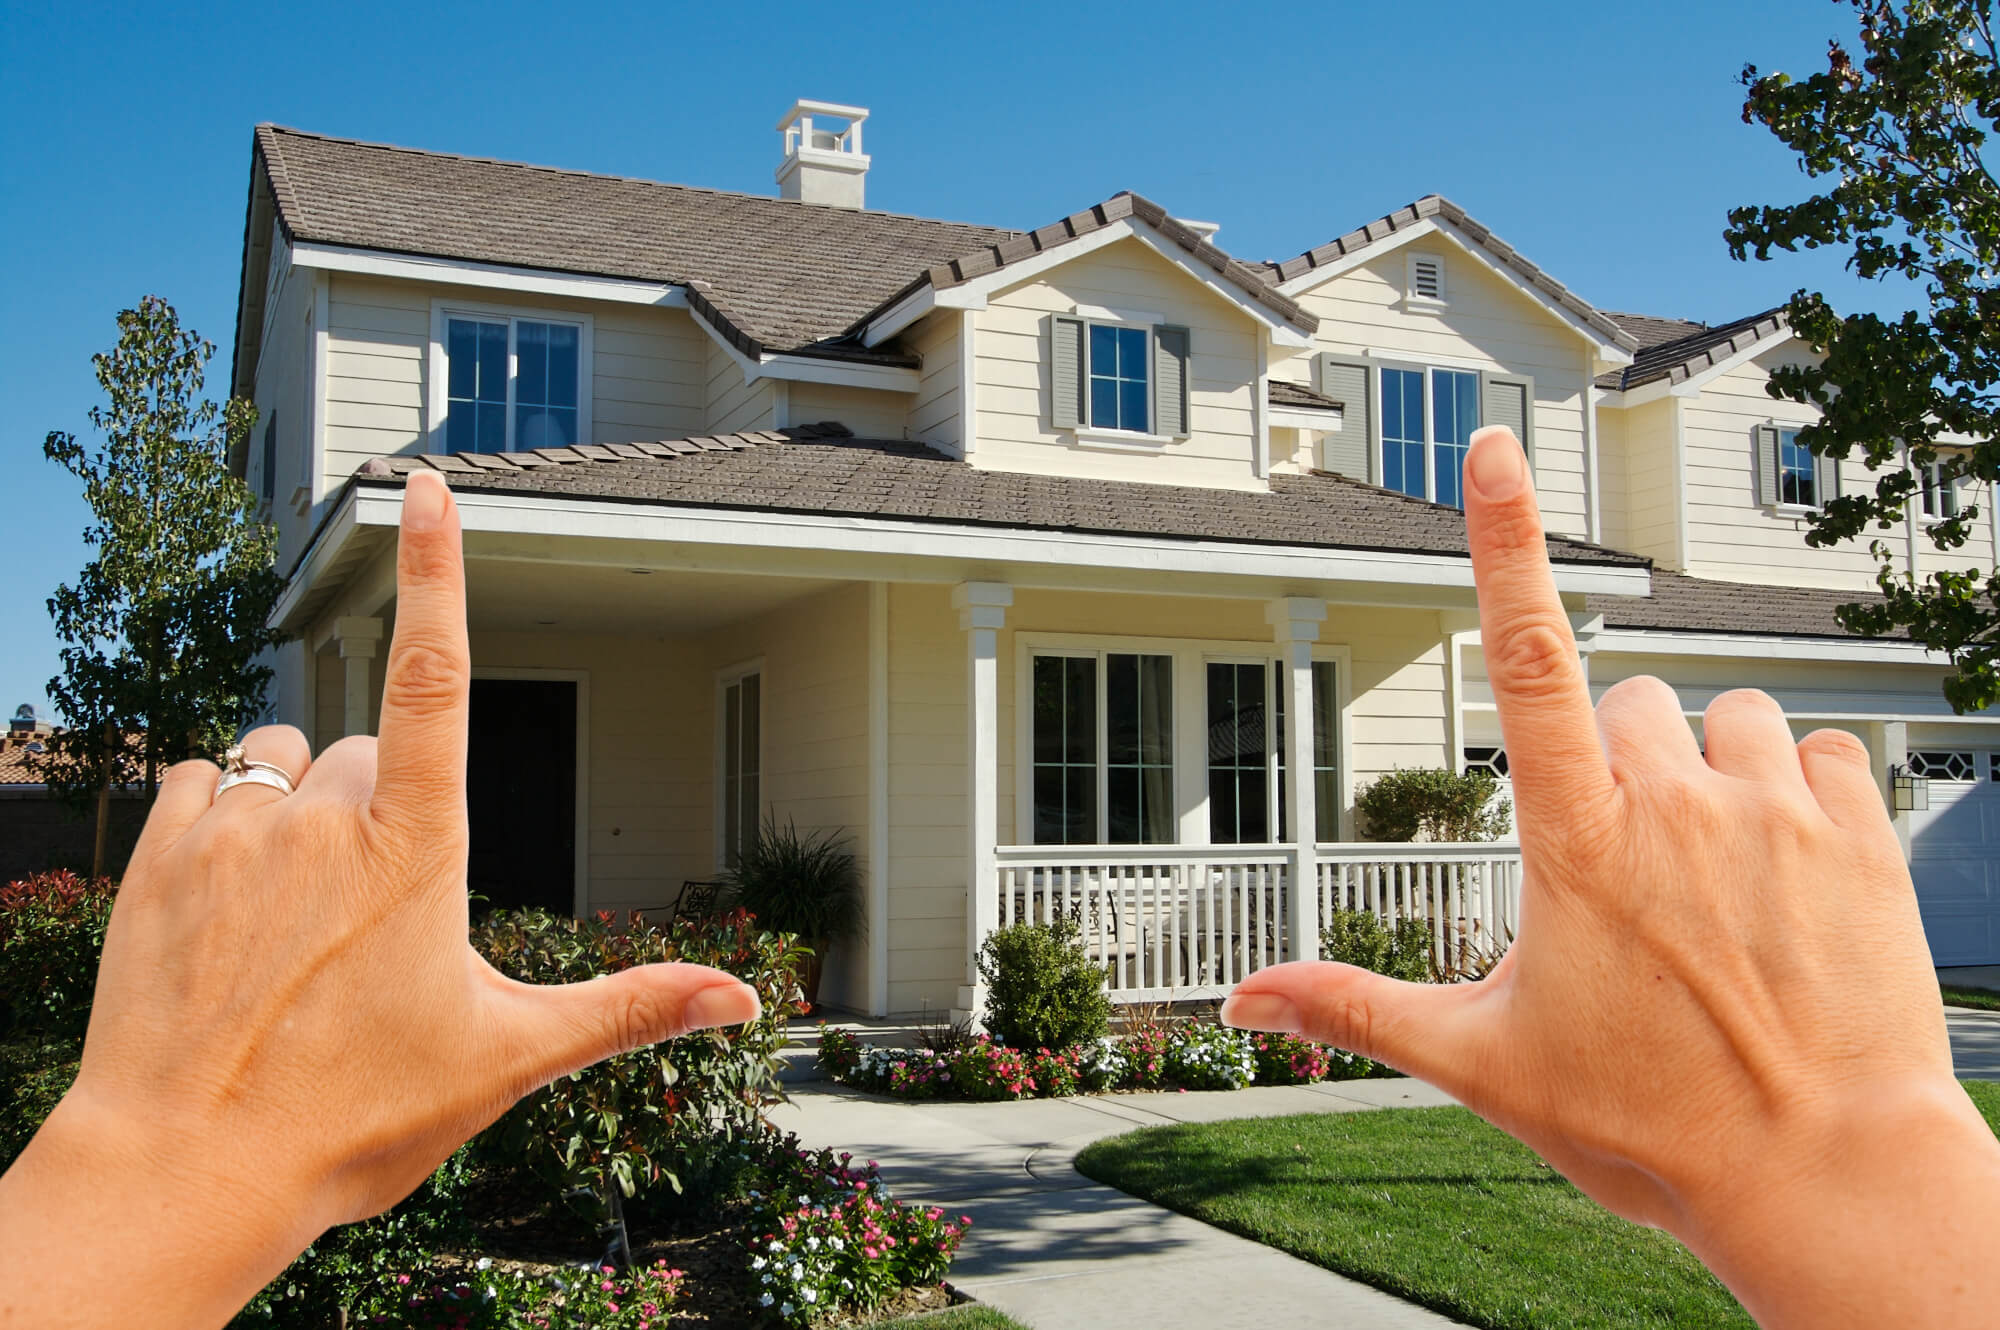 New Homeowner Leads and Mailing List Prospect